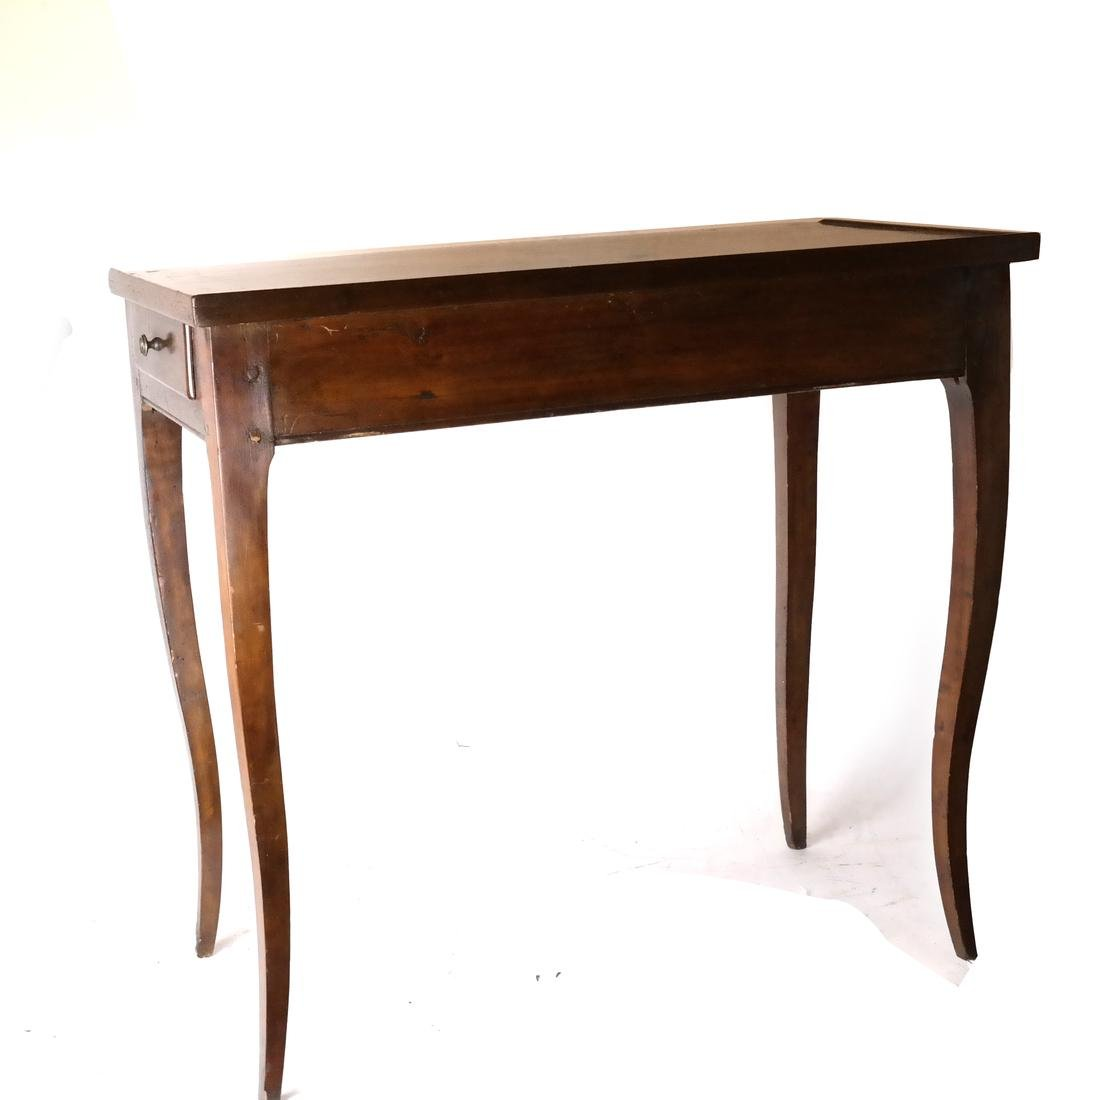 19th C. Continental Single-Drawer Table